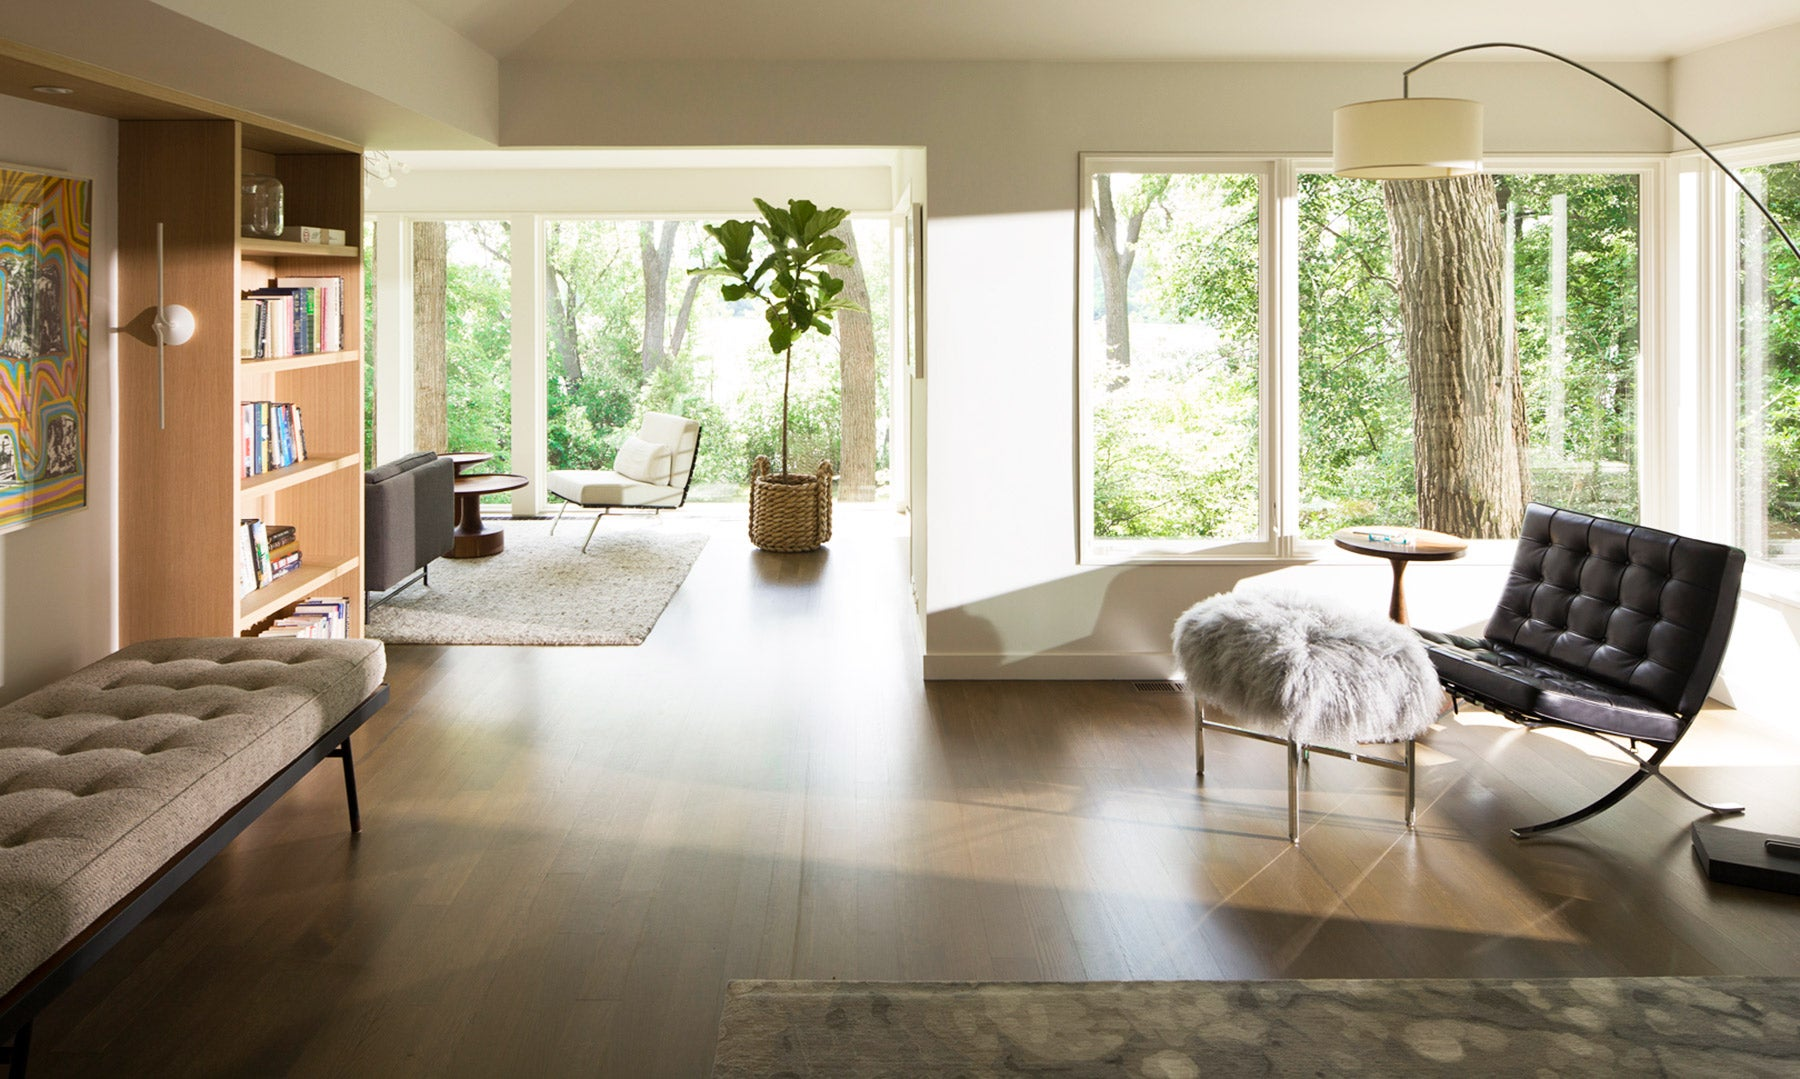 Minneapolis Living Room Designed by MDD